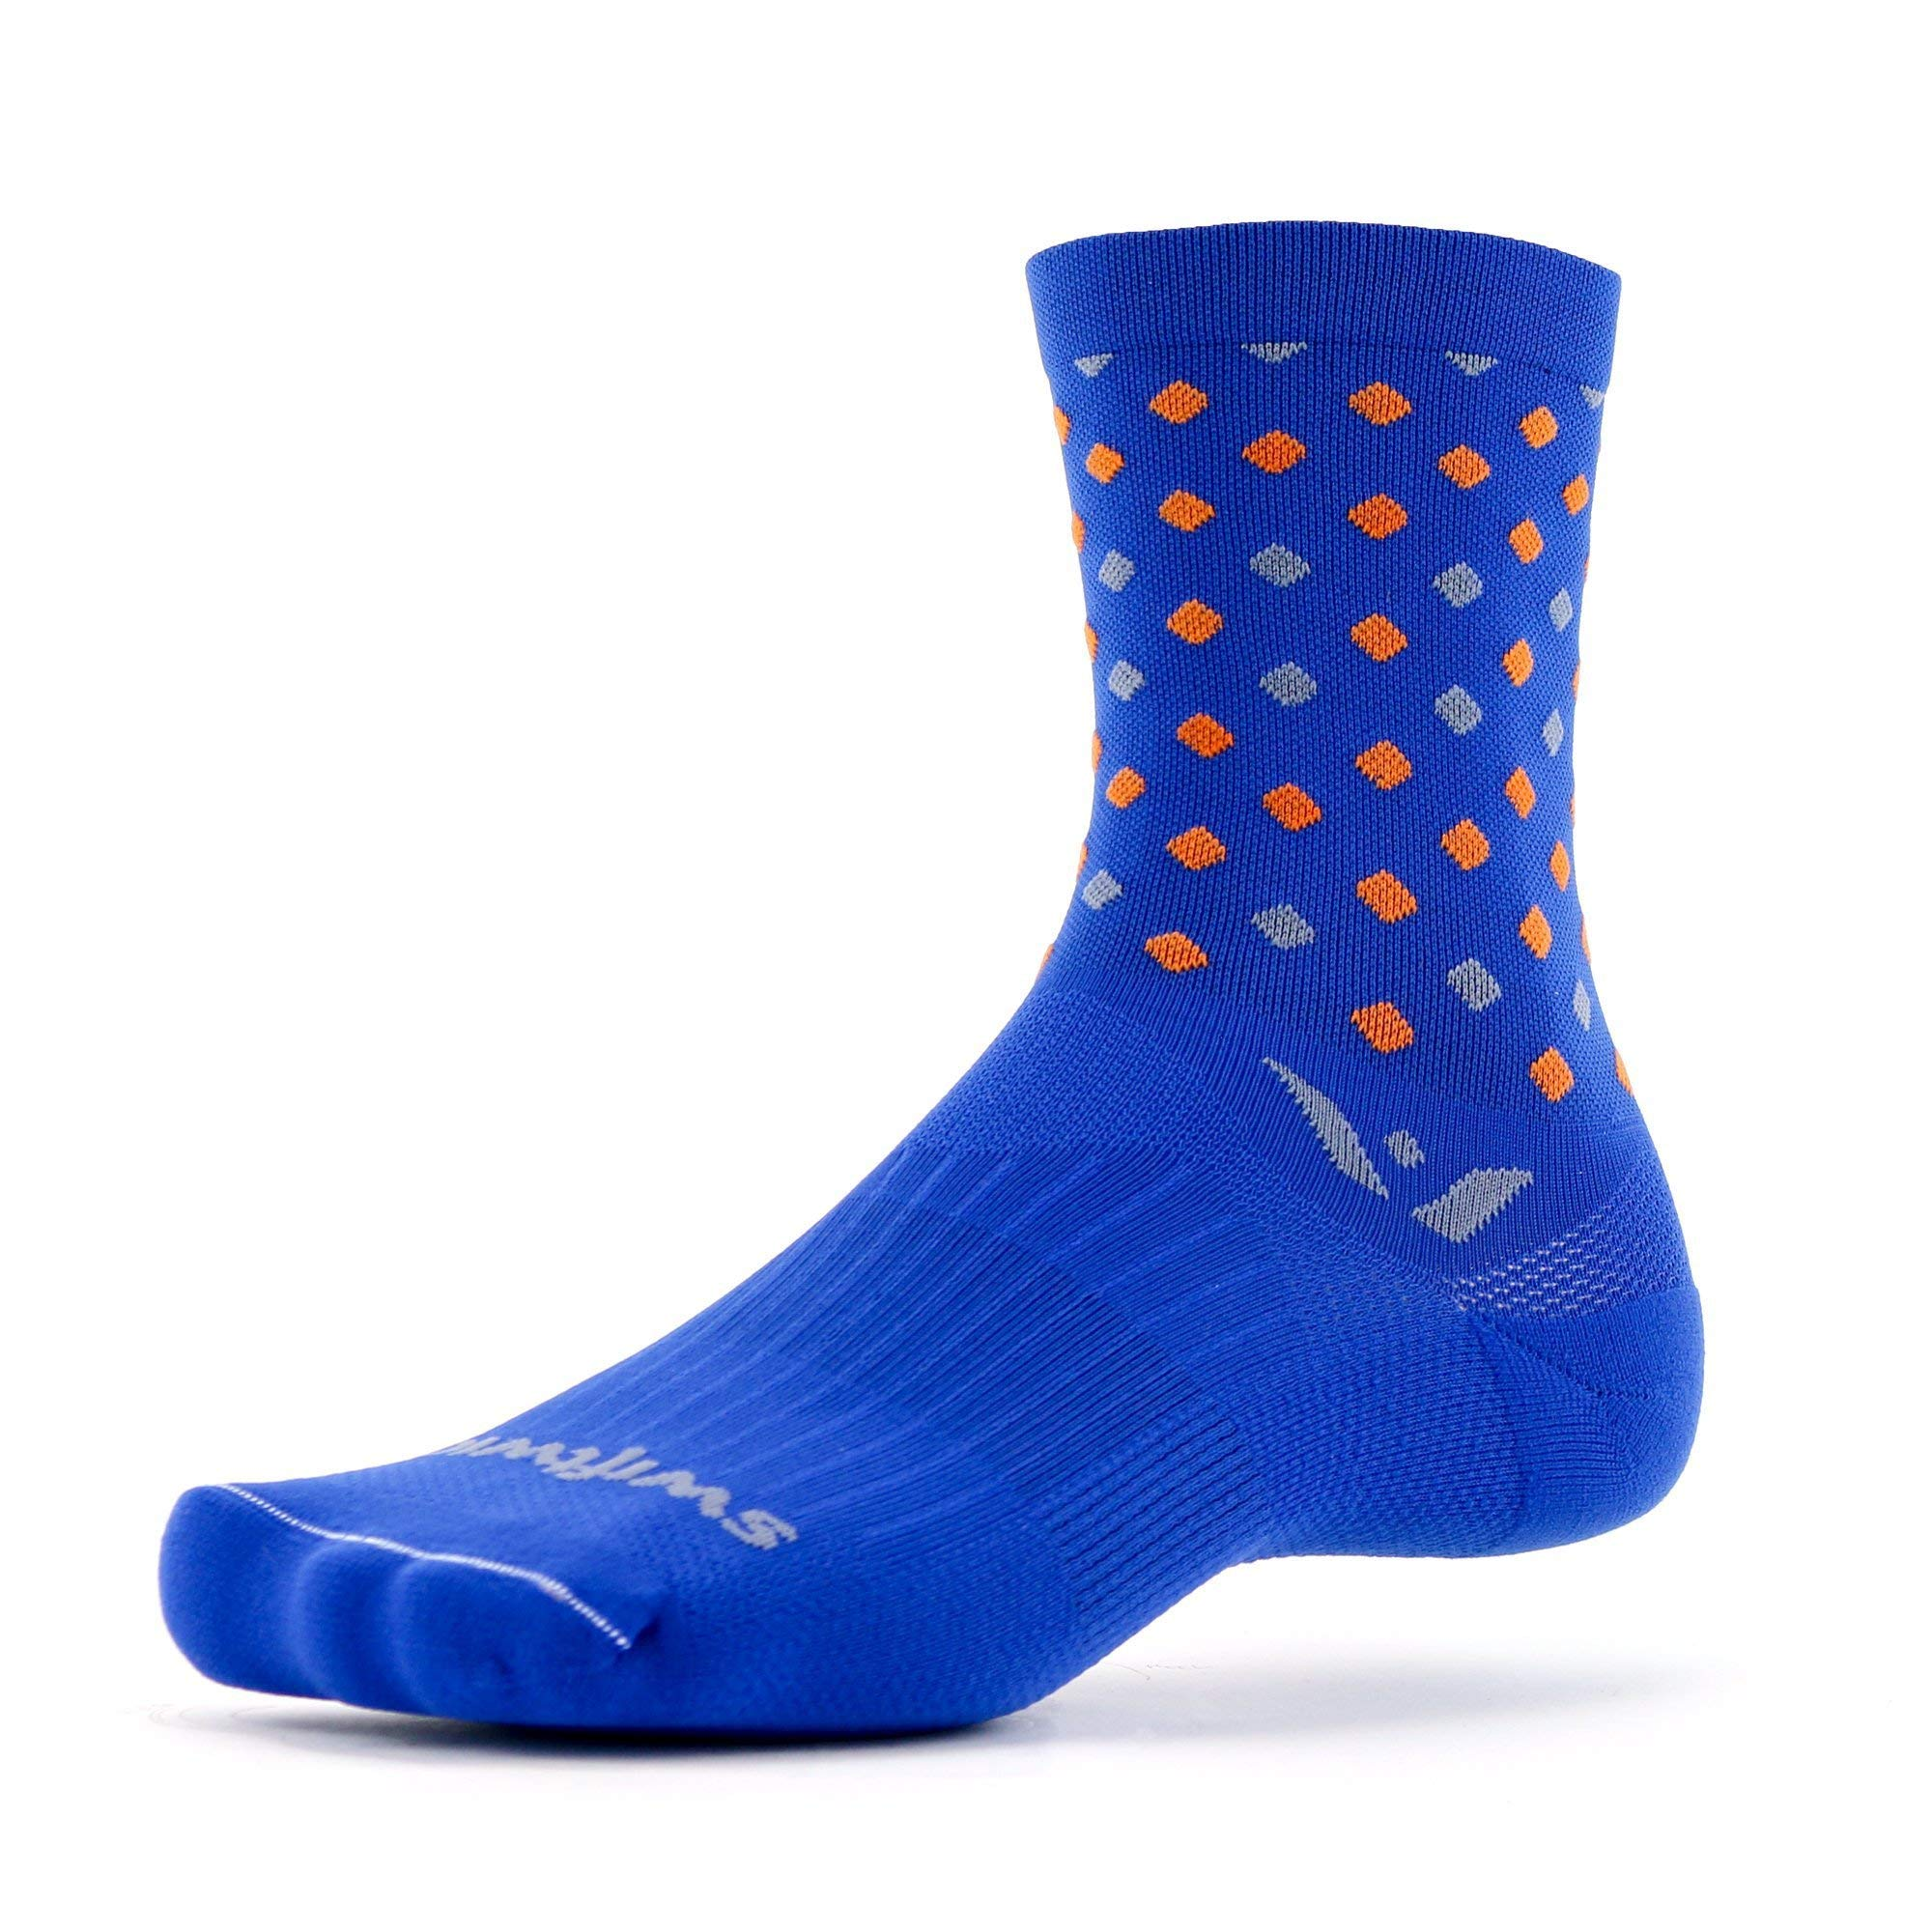 Swiftwick- VISION FIVE RAZZLE Running & Cycling Socks, Performance Crew Socks (Blue, Large)